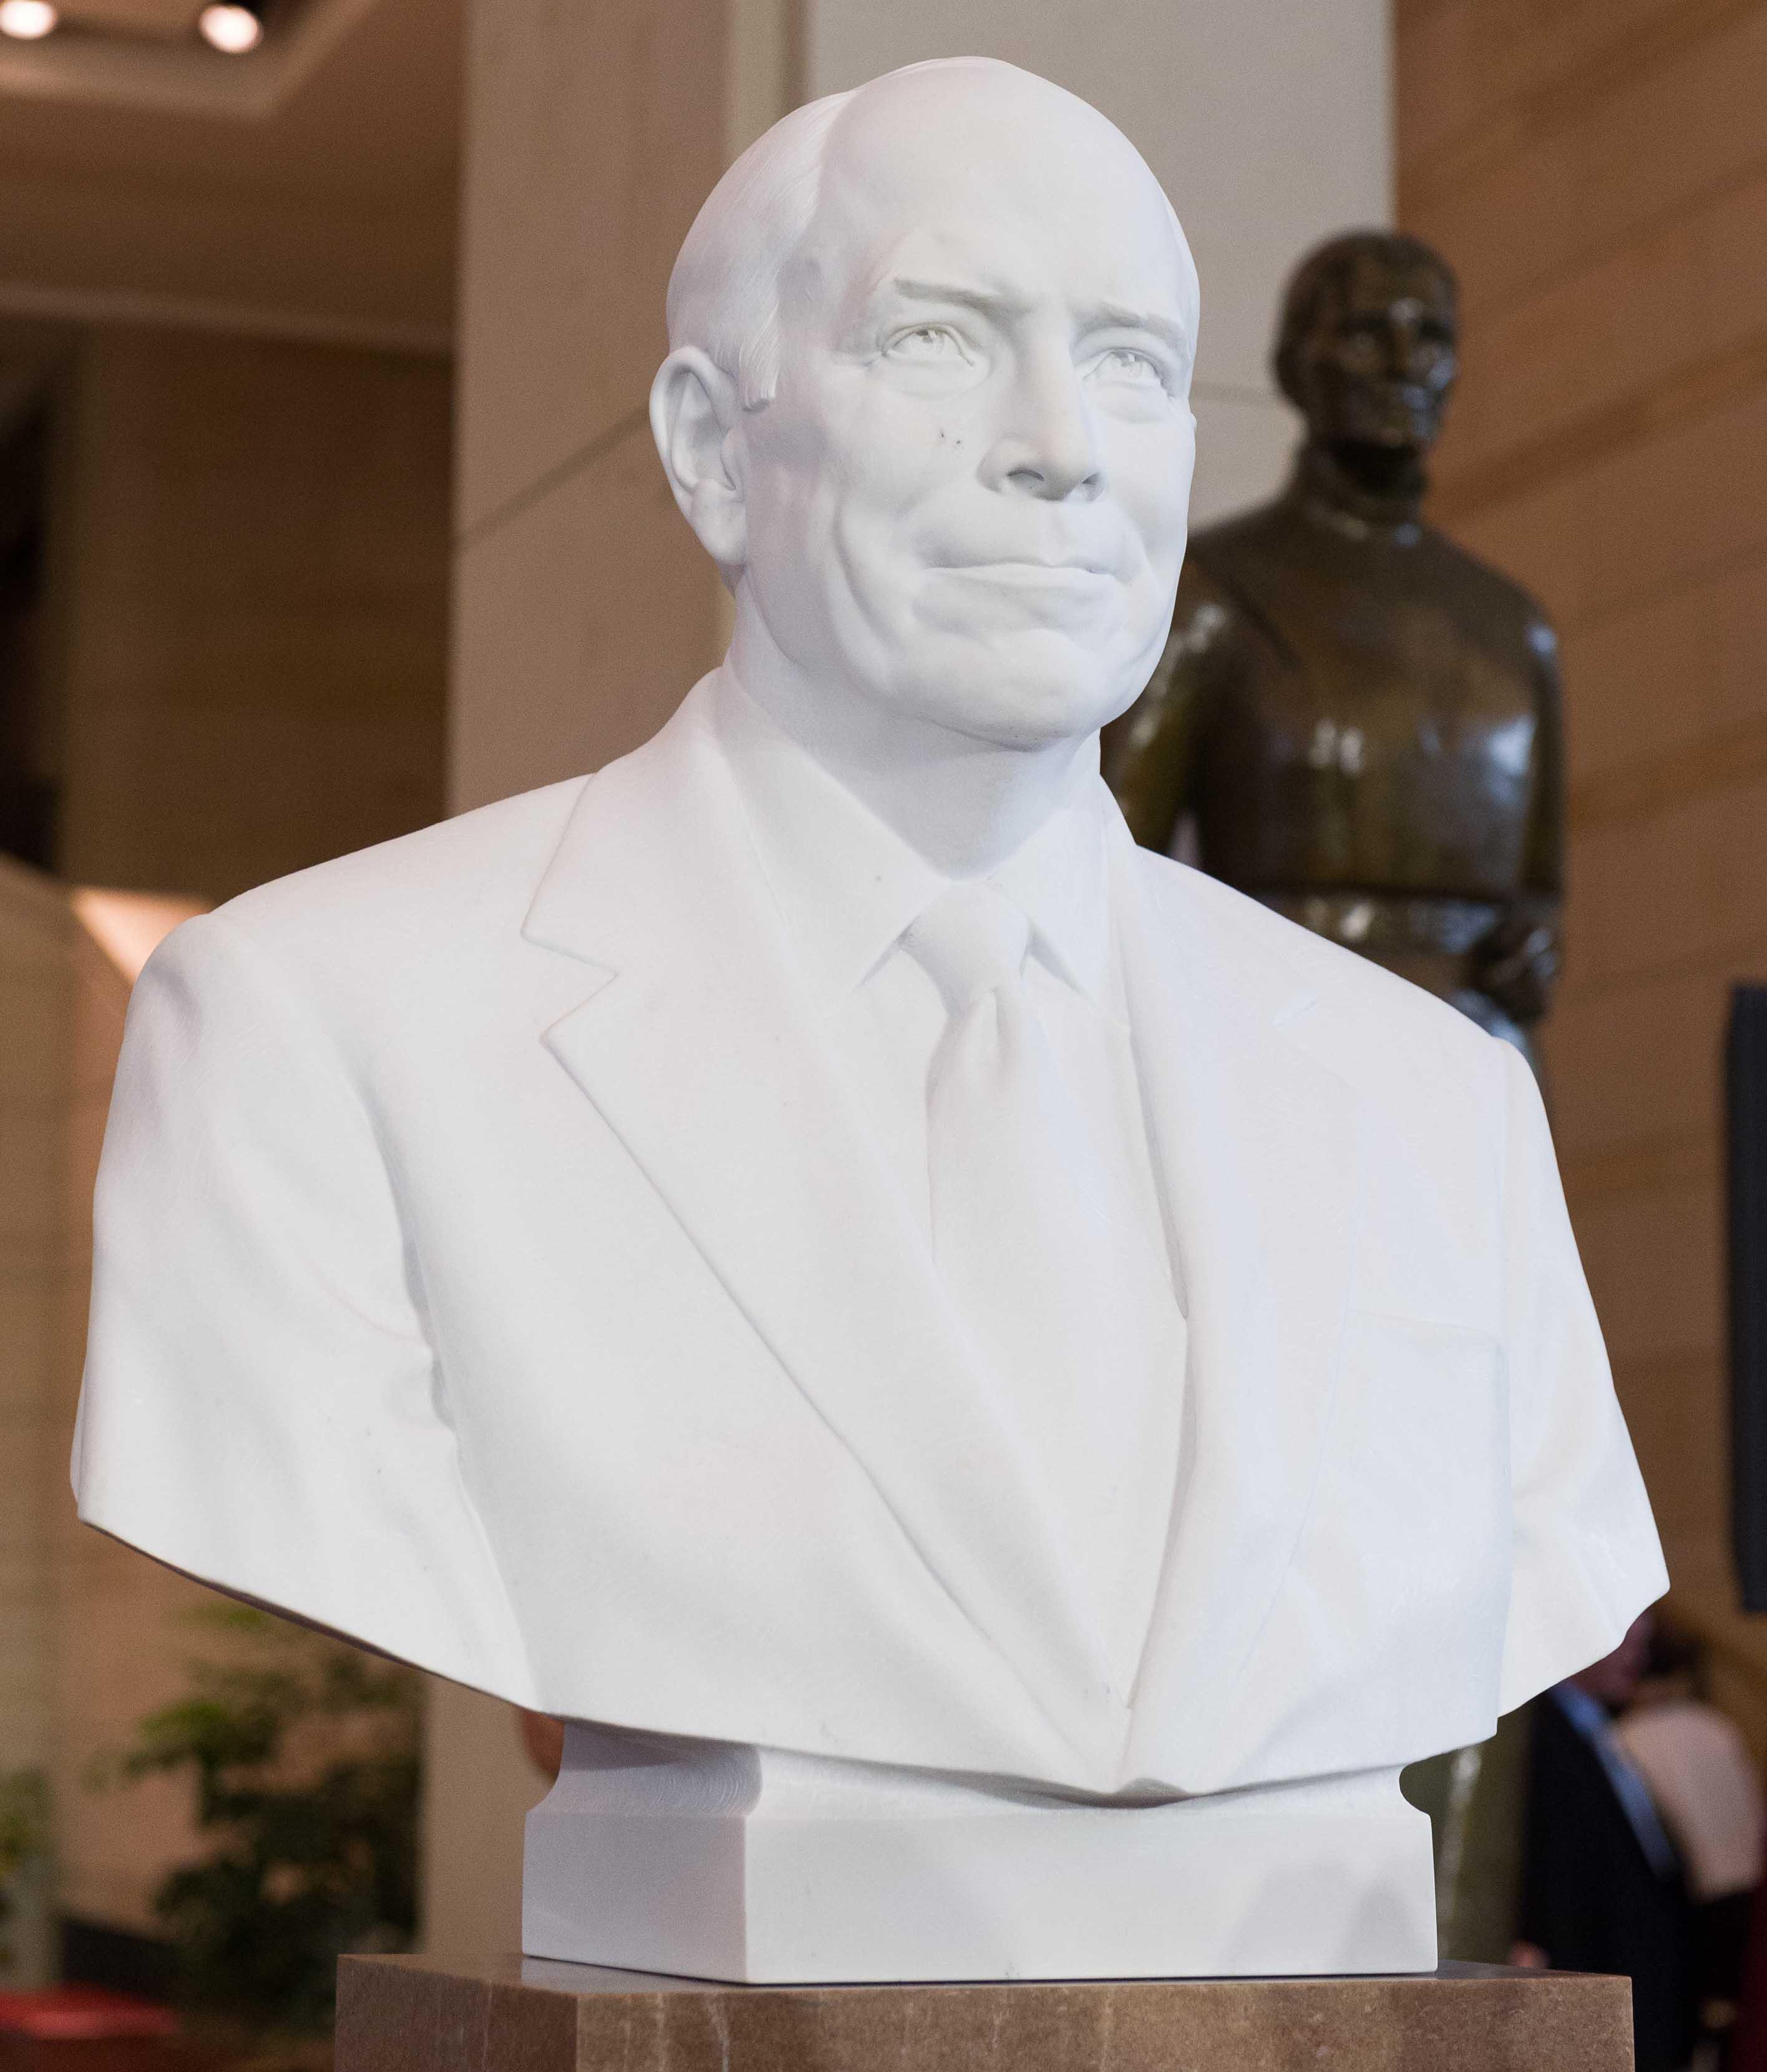 The bust of former Vice President Dick Cheney